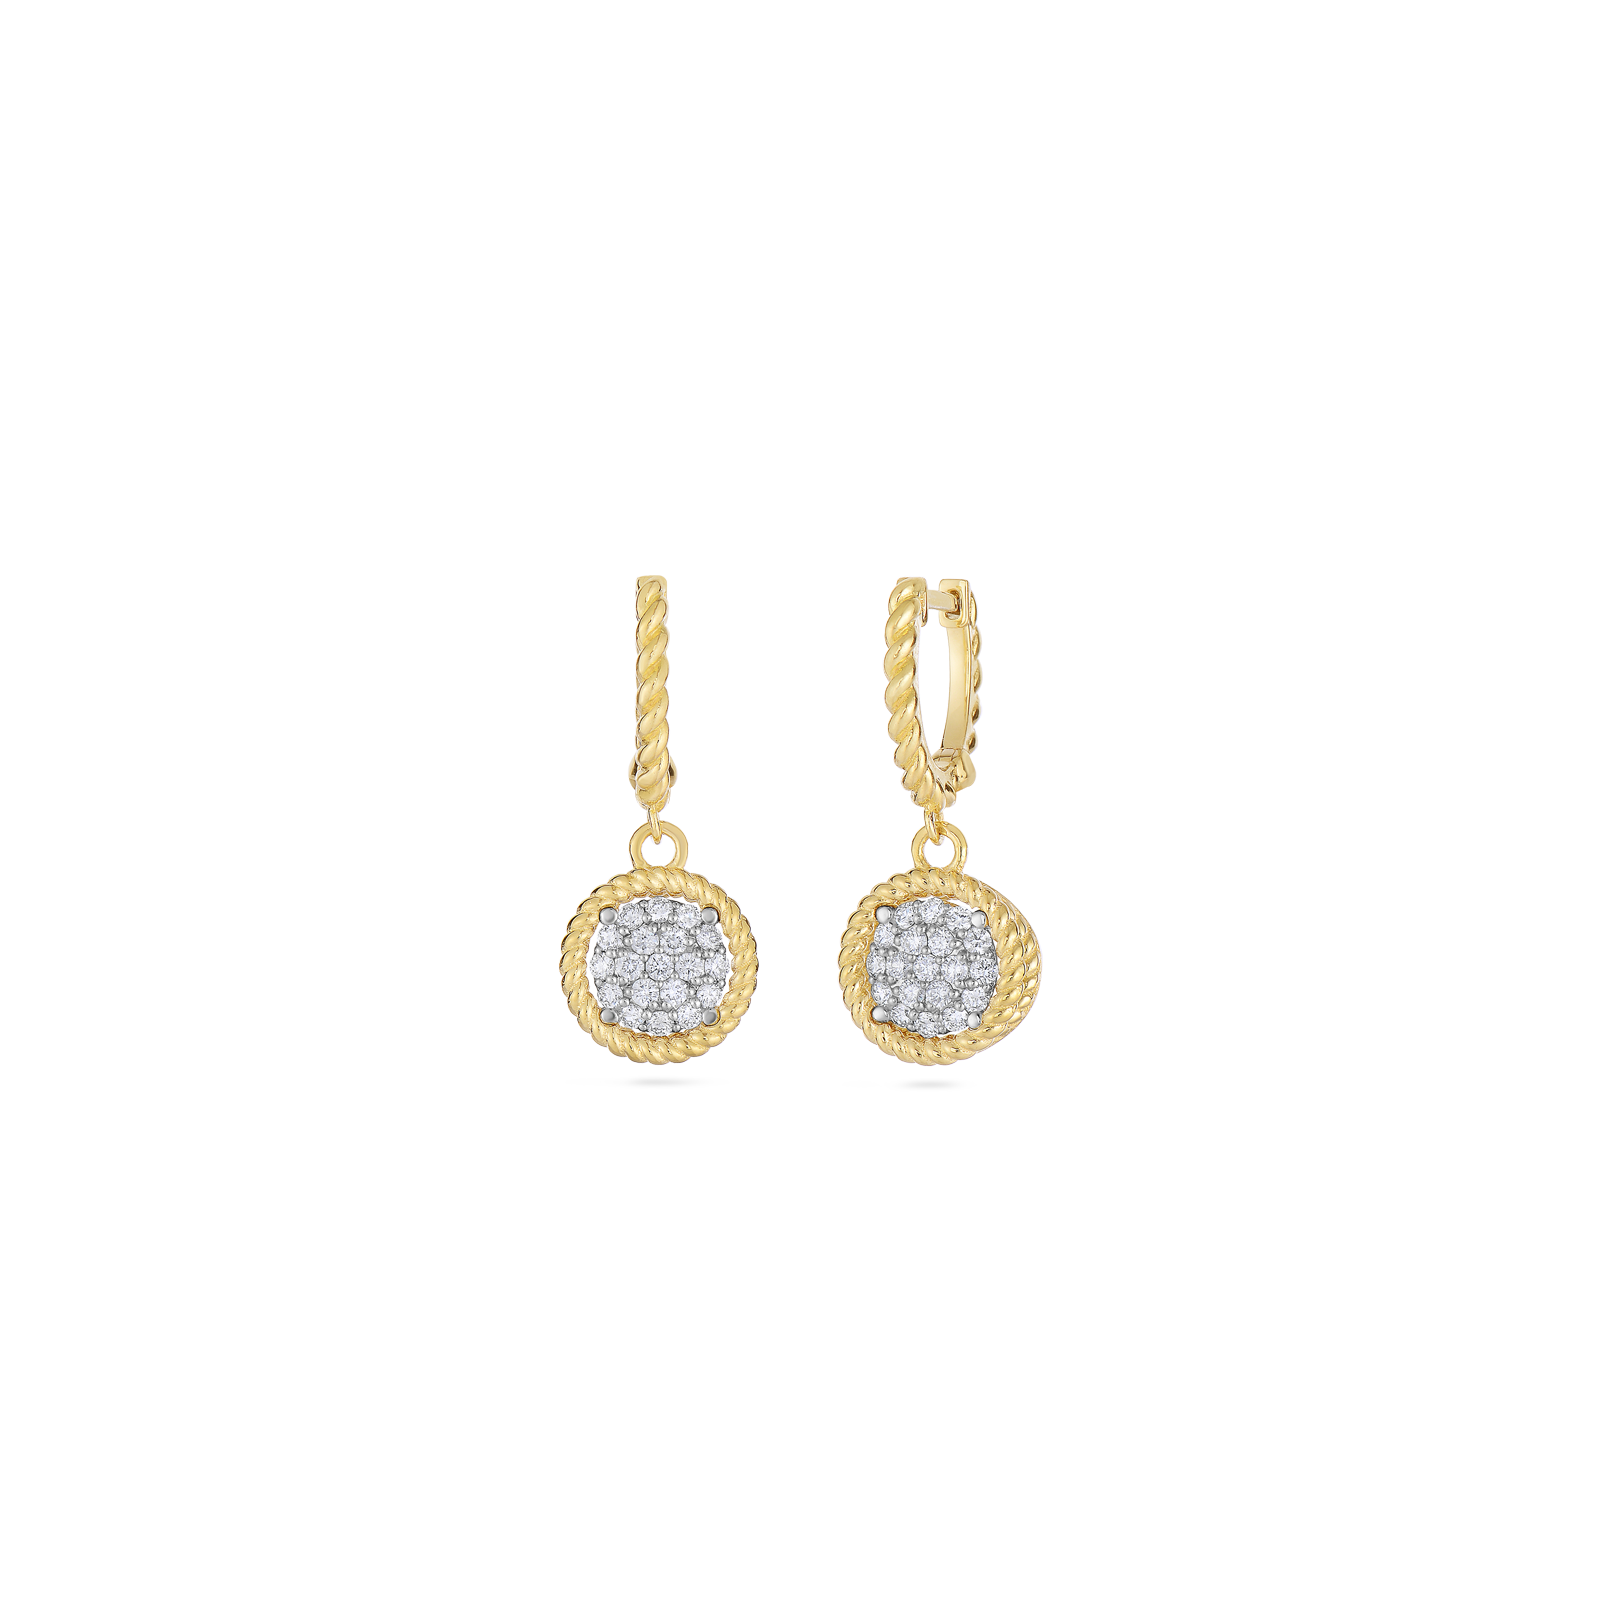 goldtone circle rose swarovski earrings product jewelry in lyst pave crystal pink gallery gold normal drop circular pav tone